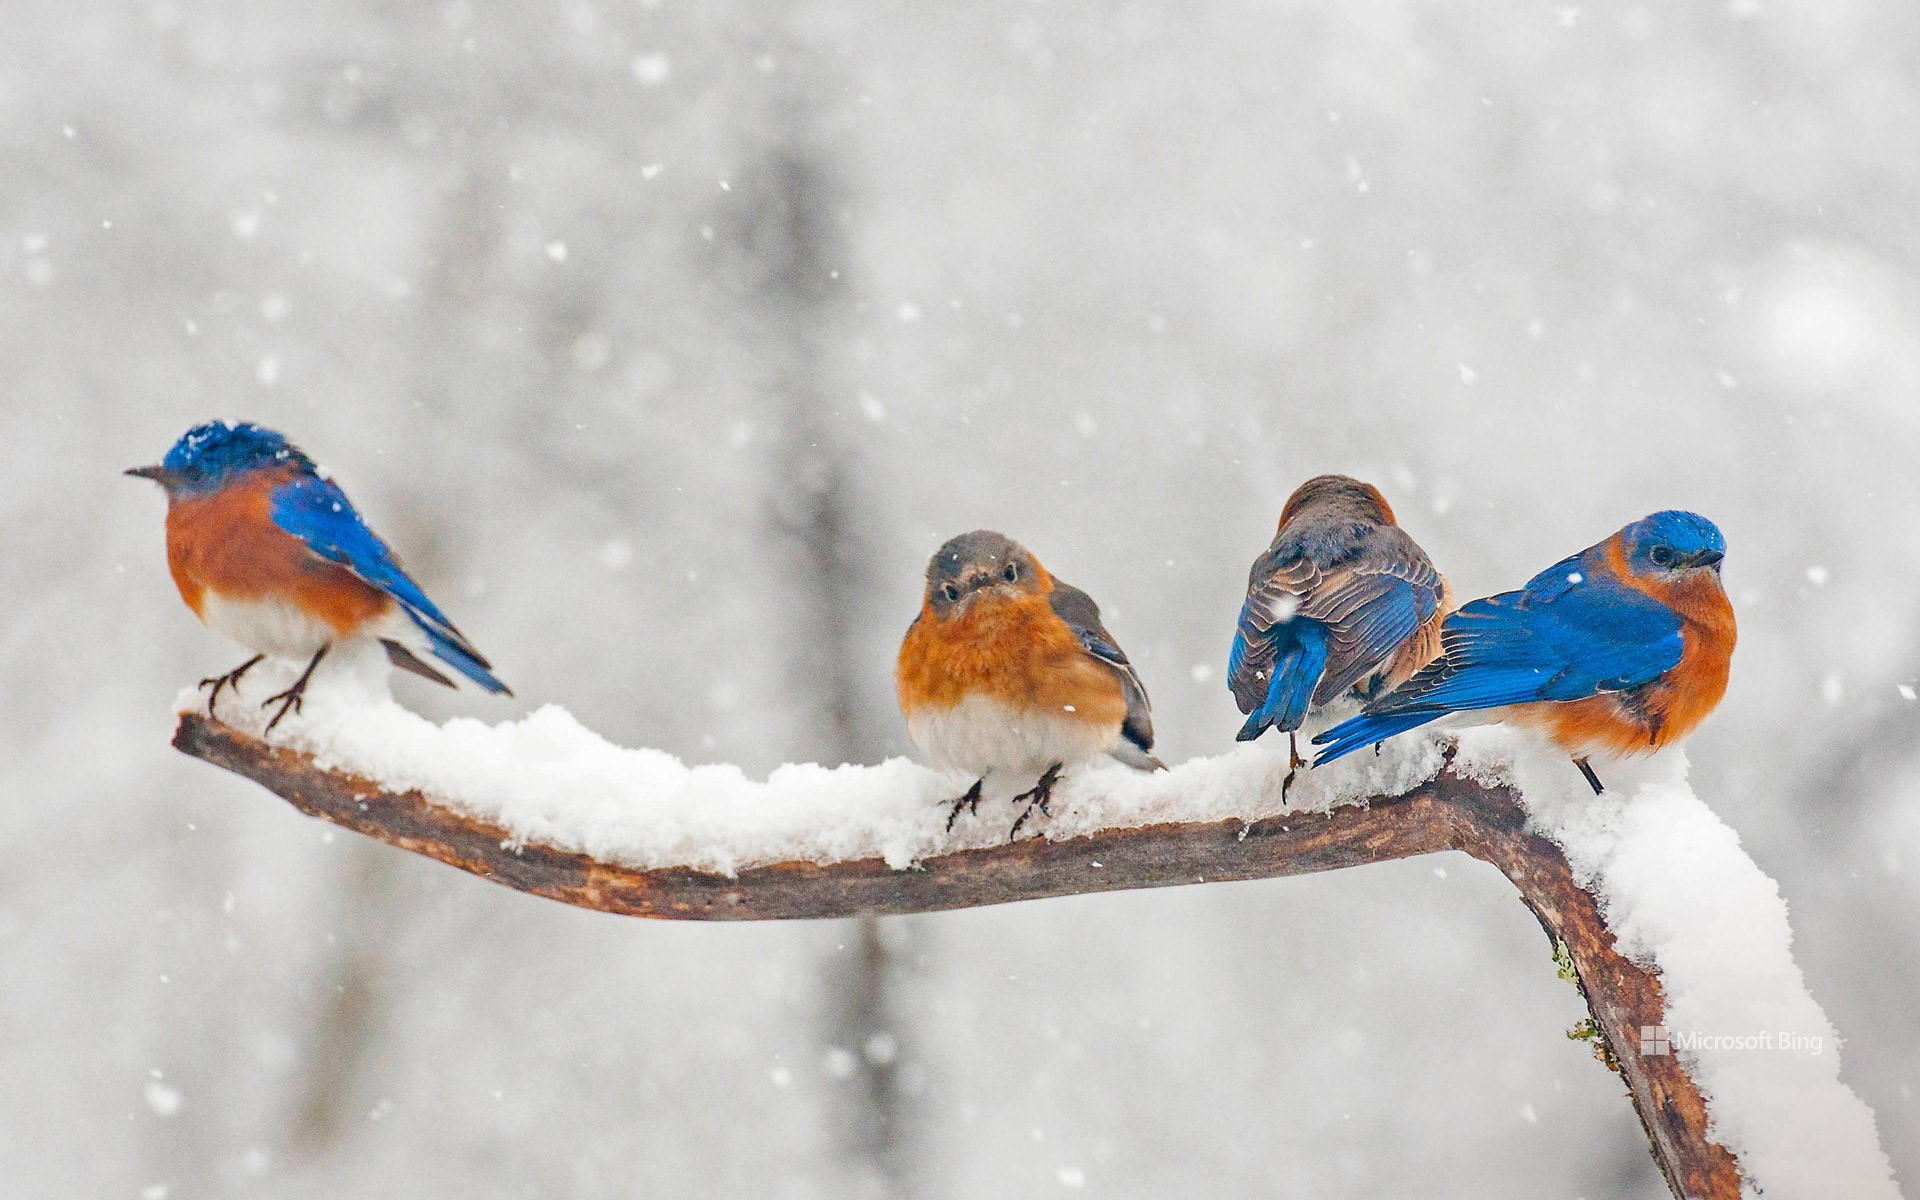 Eastern bluebirds in Charlotte, North Carolina